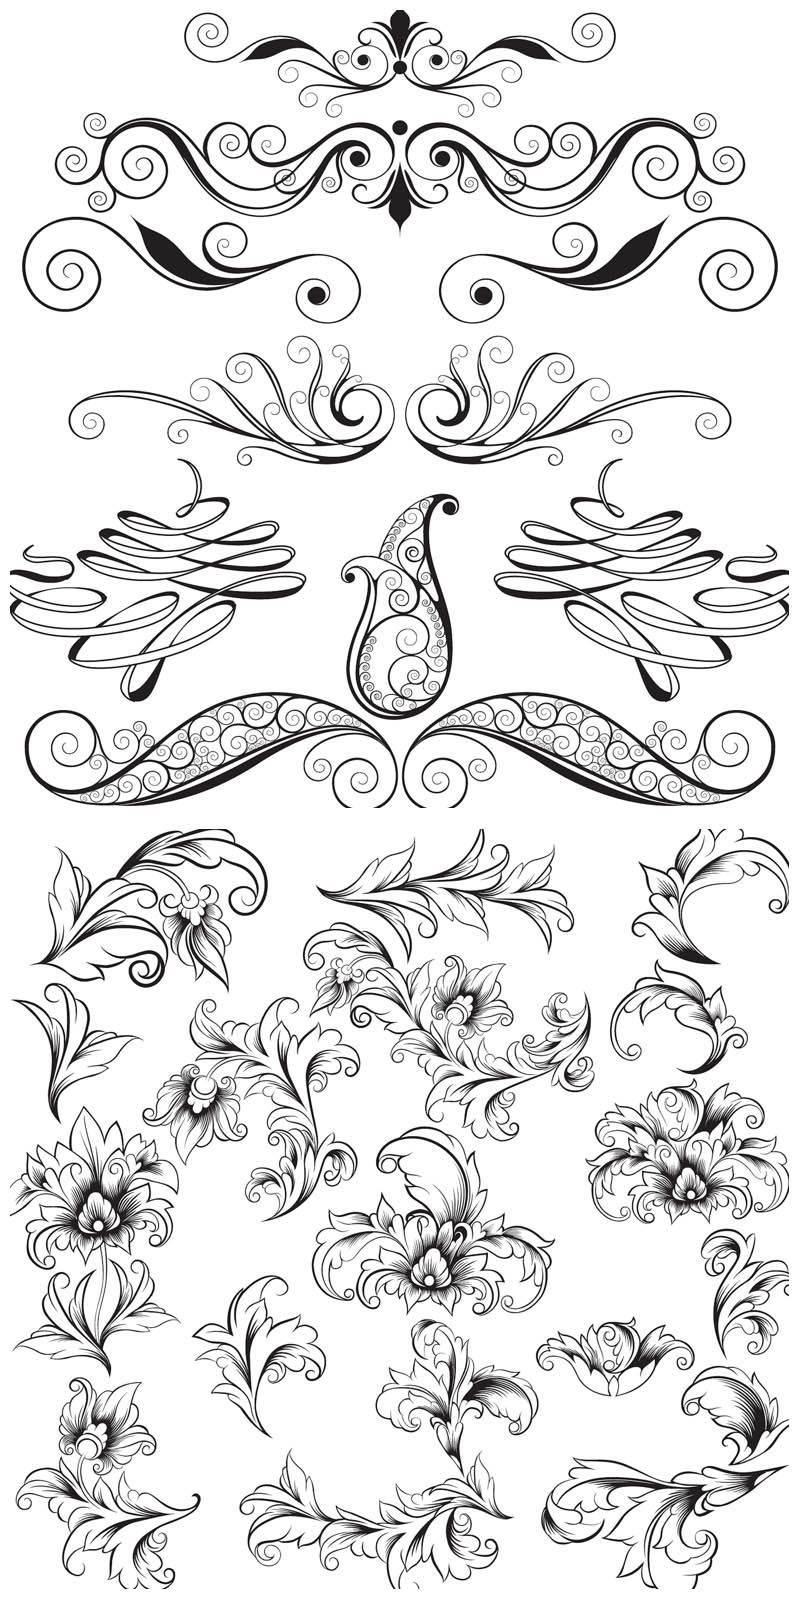 2 Sets of vector vintage decor elements for your ornaments